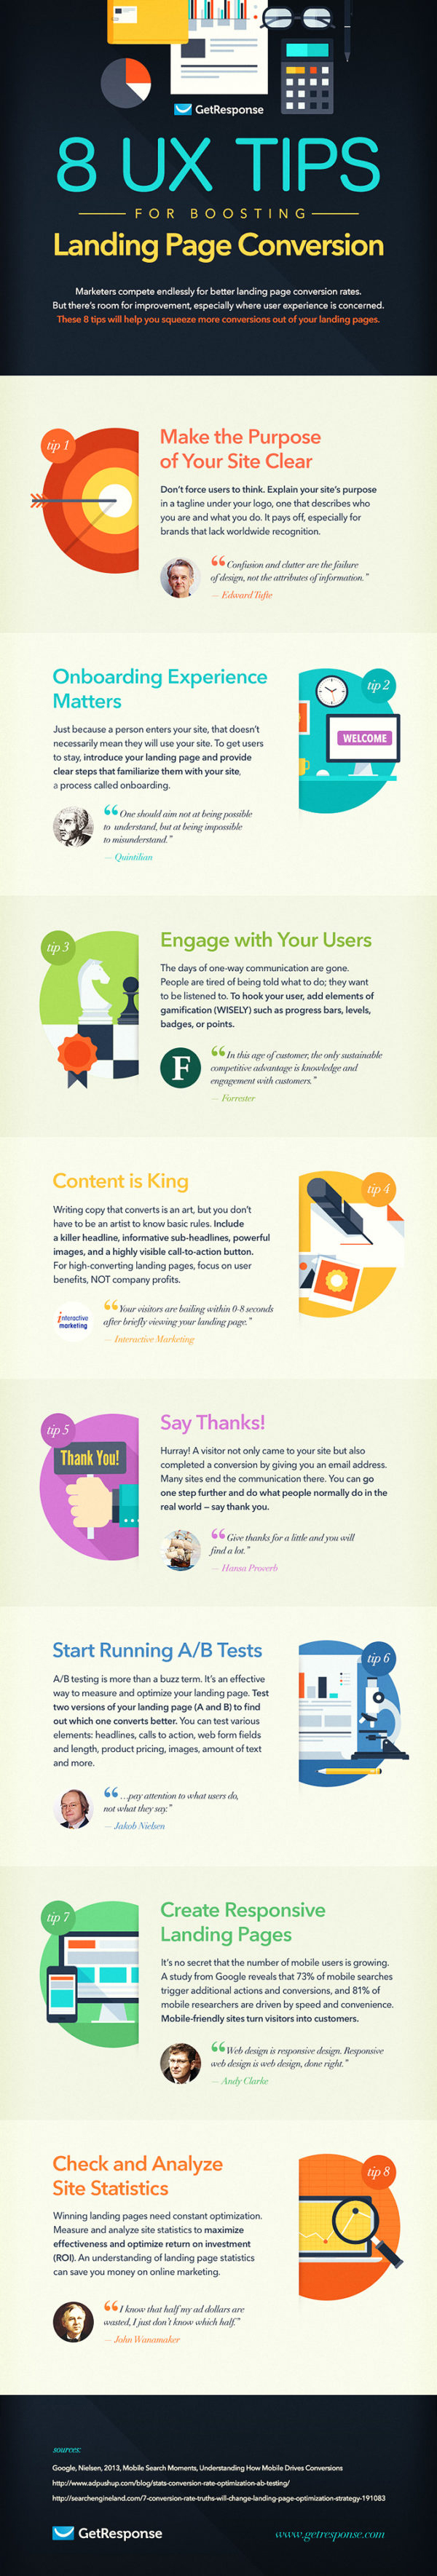 Infographic outlines tips to boost landing page performance